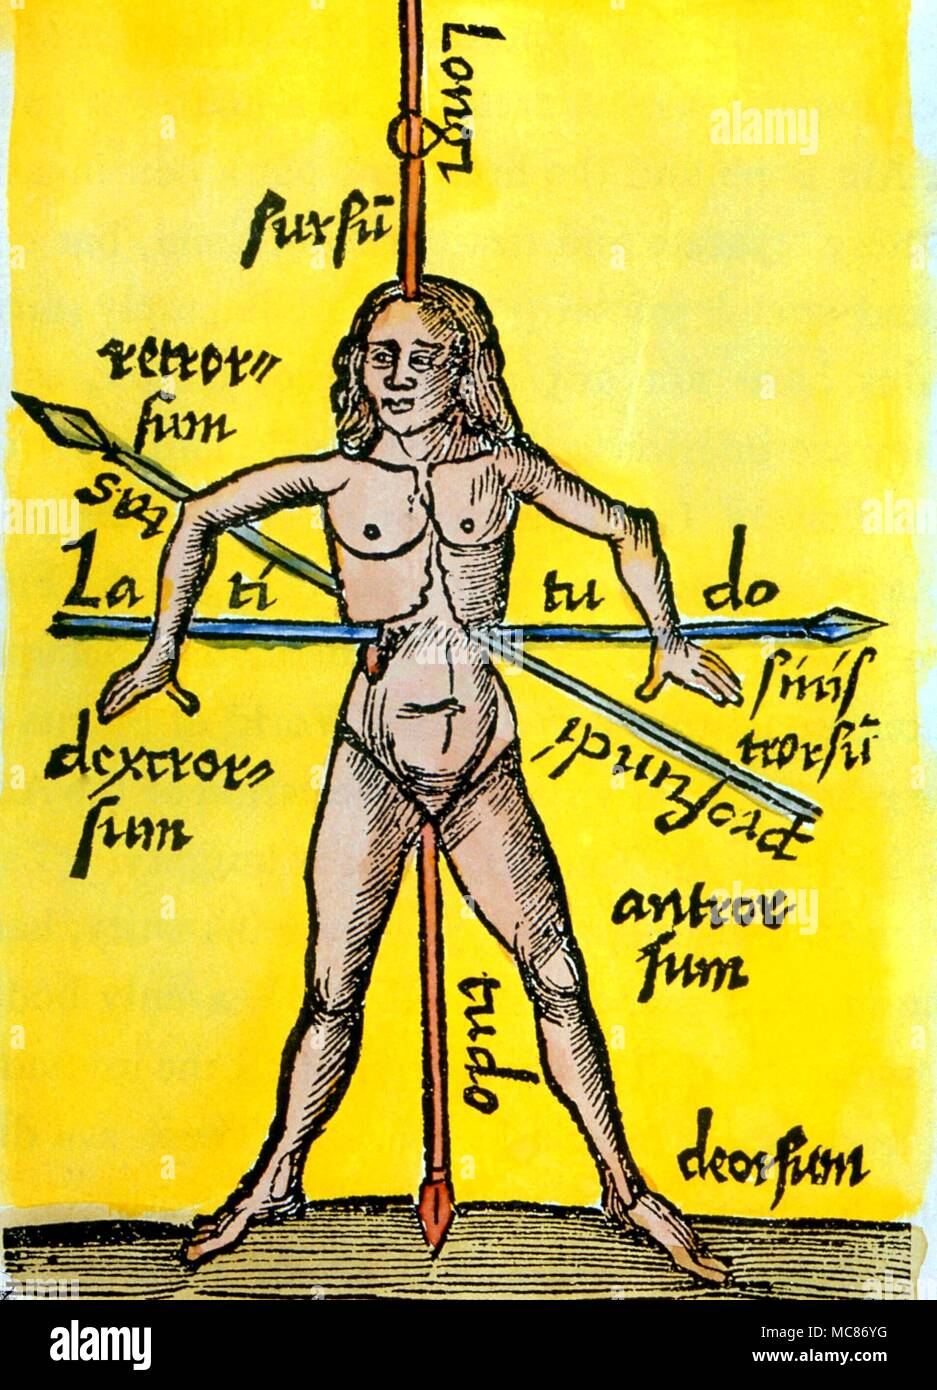 CABBALA The macrocosmic man in terms of height, breadth and depth - the three spiritual directions, from the Schotus (1503) edition of 'Margarita Philosophica.' - Stock Image